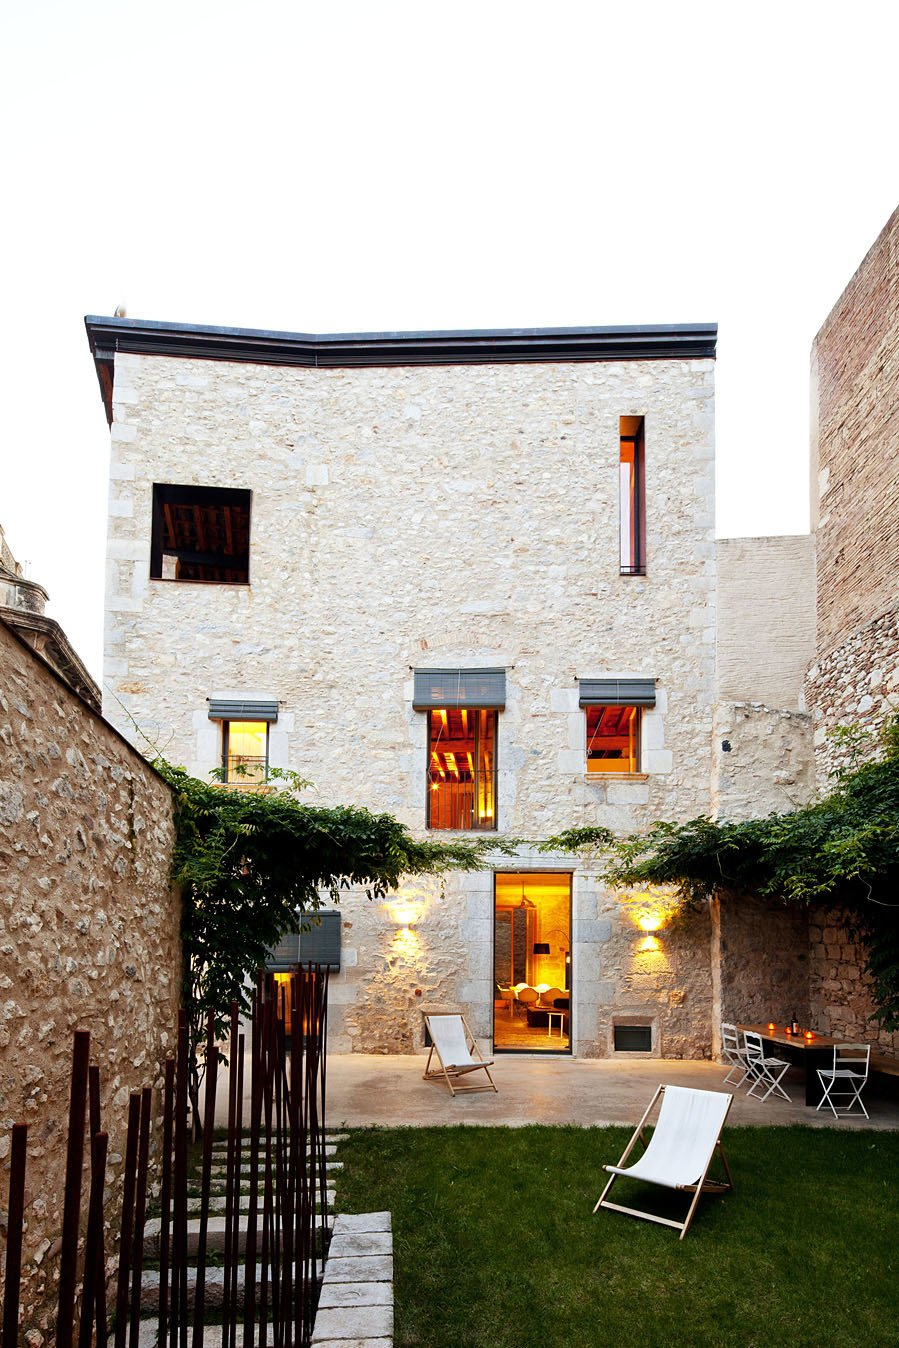 Outdoor, Small Patio, Porch, Deck, Back Yard, Stone Fences, Wall, Grass, and Landscape Lighting A wisteria-shared courtyards and garden with a dining area.  Photo 7 of 15 in A Spanish Architect Transforms a Medieval Townhouse Into a Stunning Rental